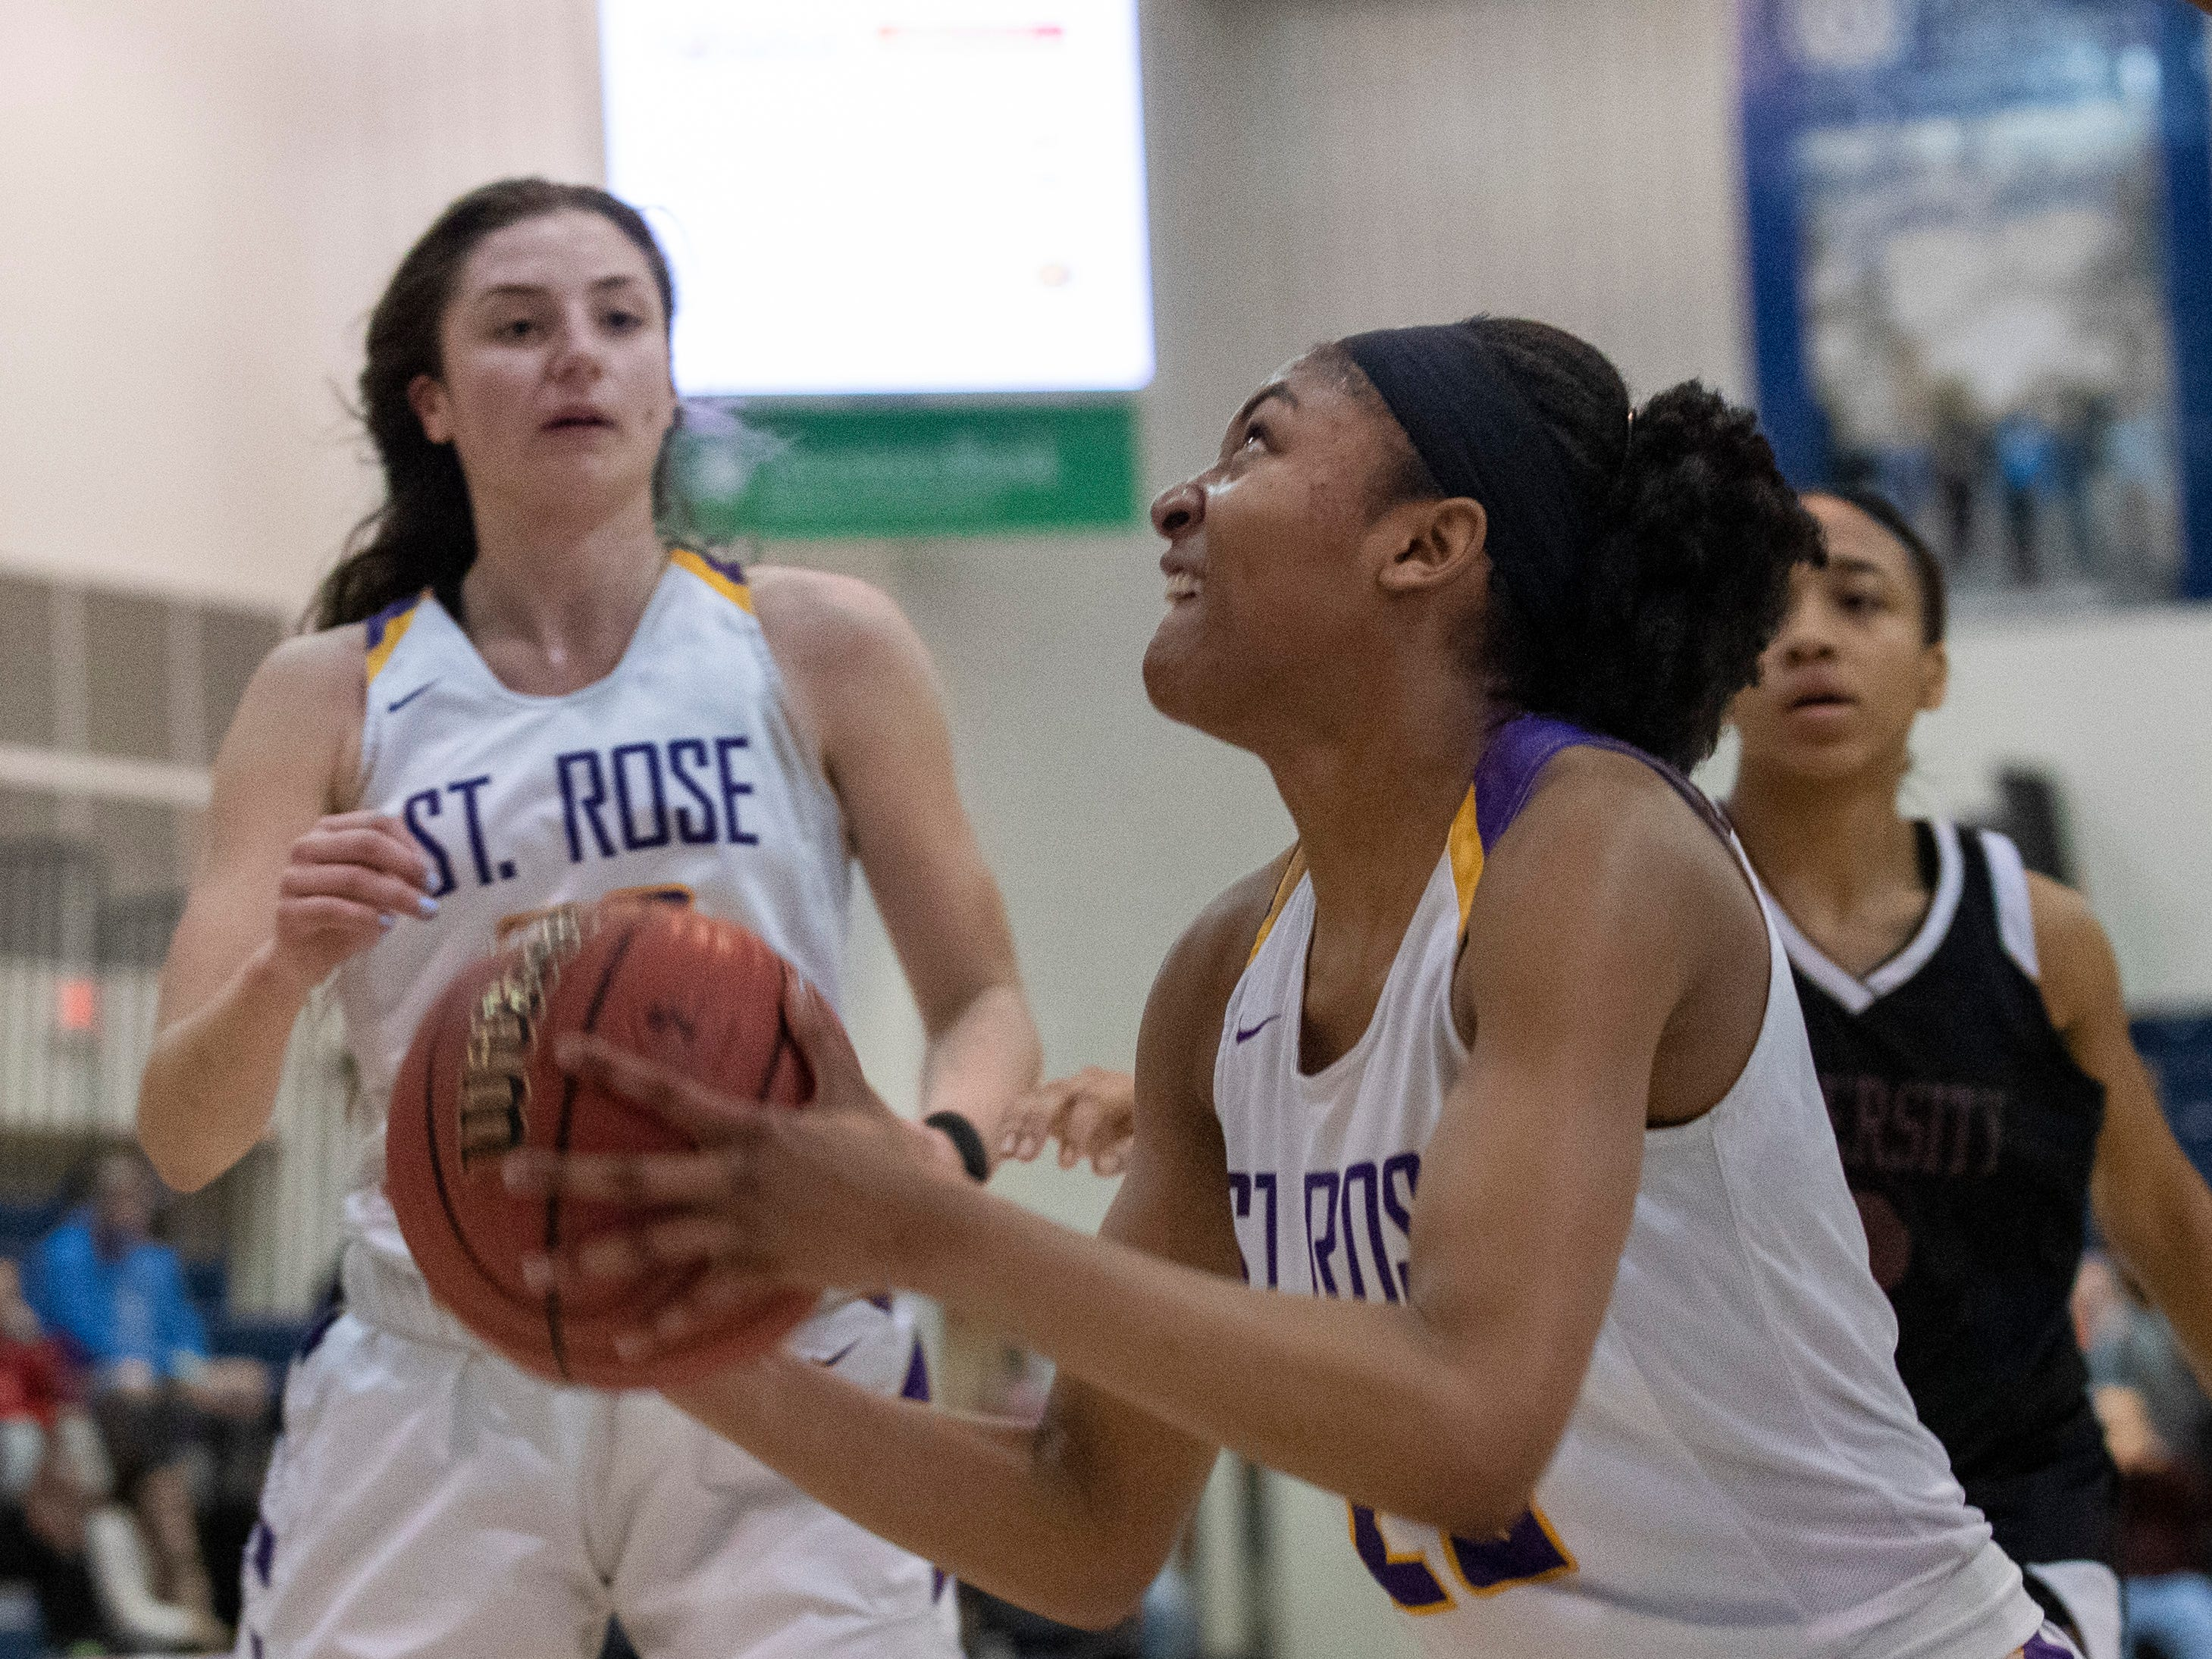 St. Rose's Makayla Andrews in first half action. St Rose Girls Basketball vs University in Tournament of Champions opening round game in Toms River on March 12, 2019